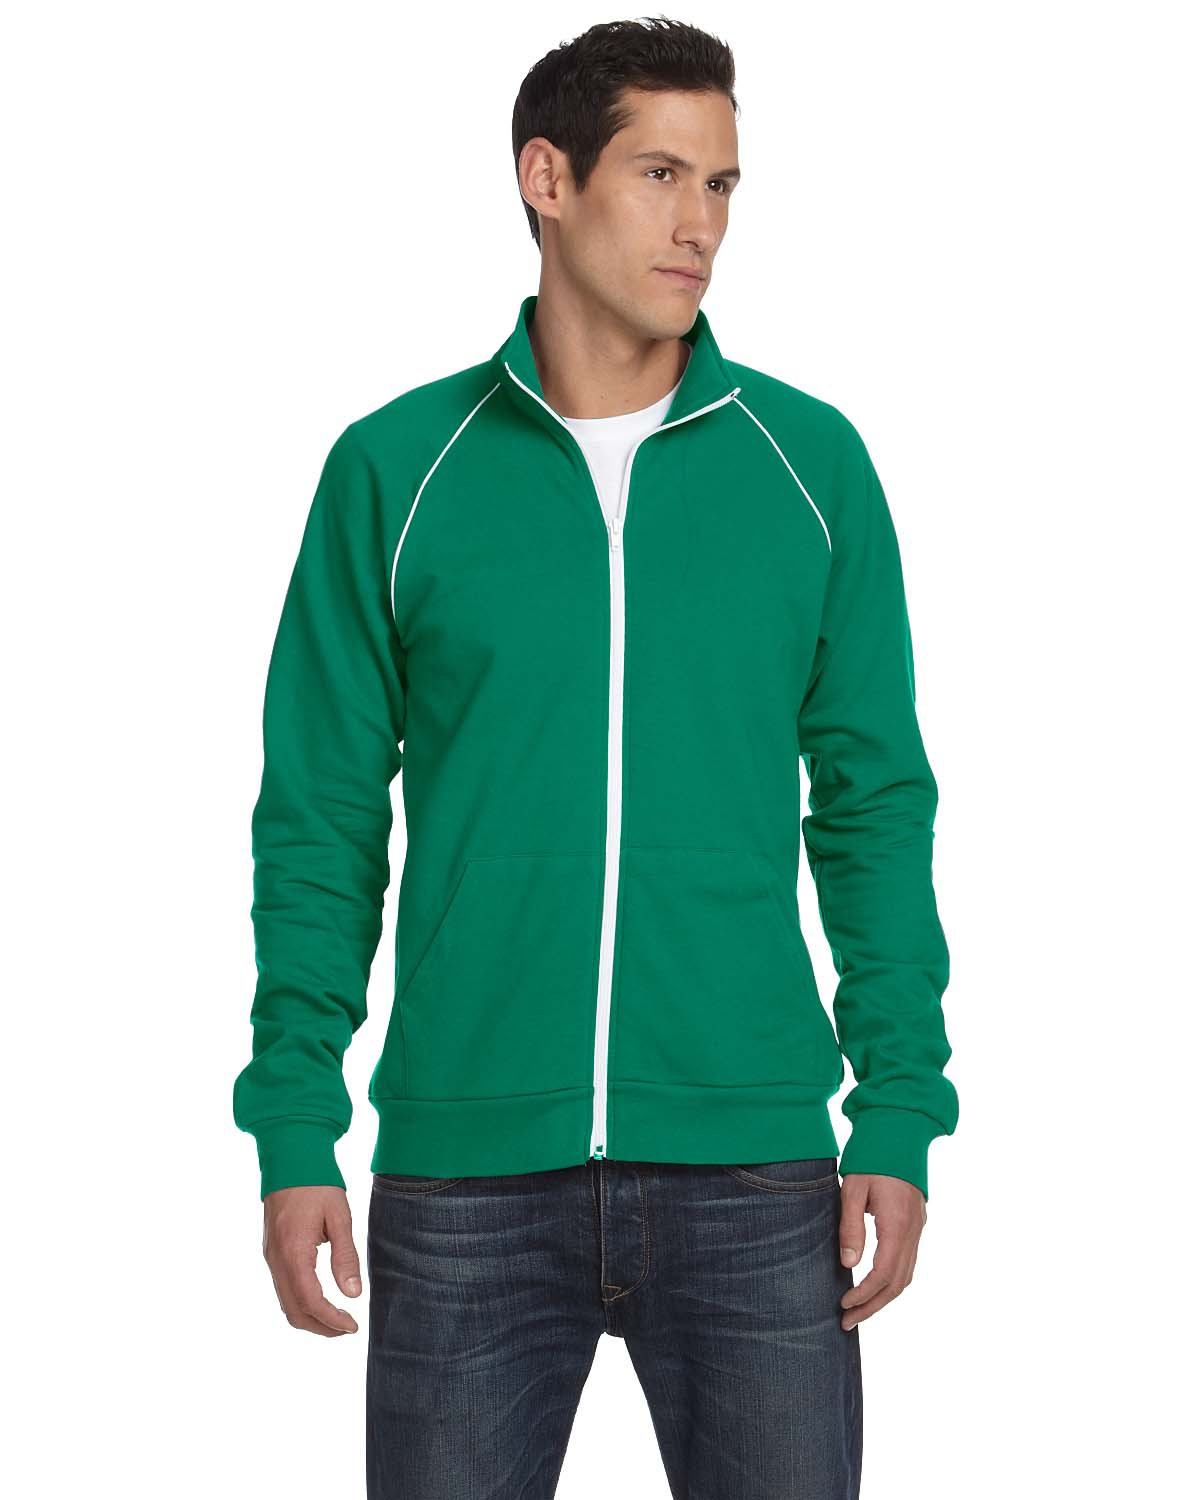 Canvas 3710 La Brea Full-Zip Fleece Cadet Collar Jacket with Piping